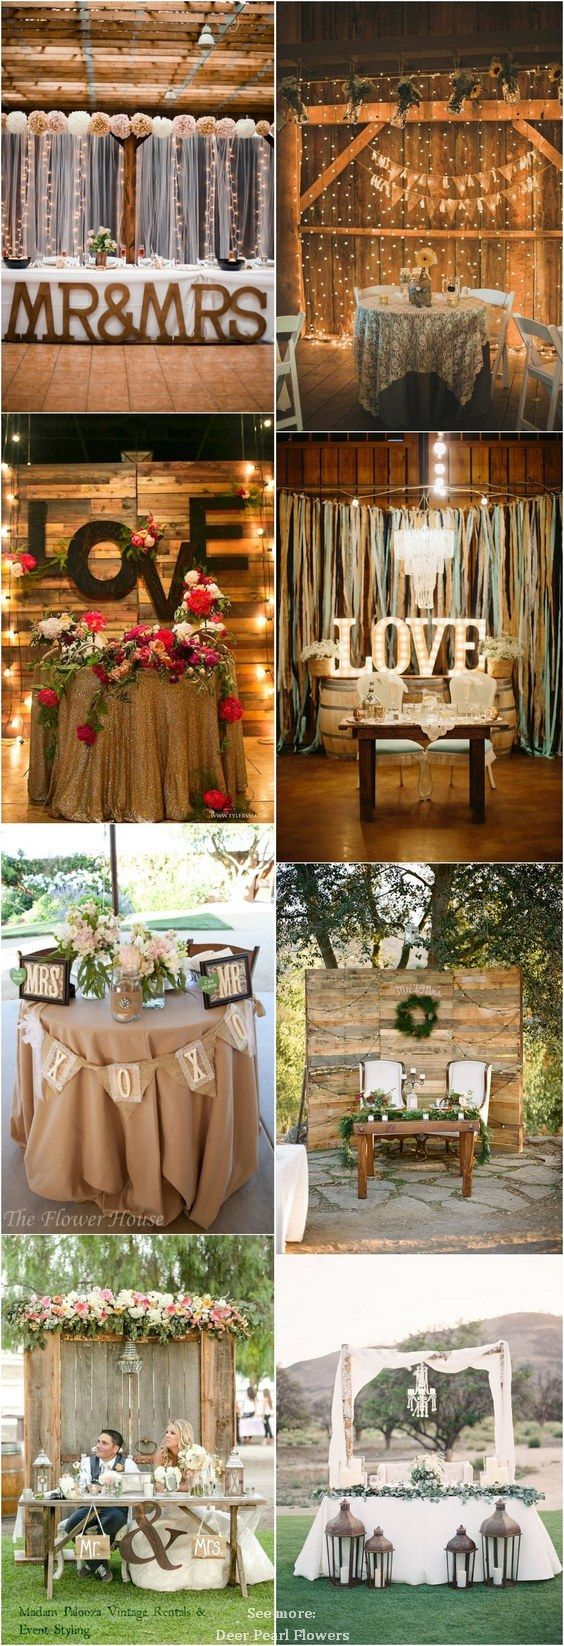 ideas for rustic wedding reception%0A Rustic country wedding ideas  rustic sweetheart table decor for wedding  reception   http